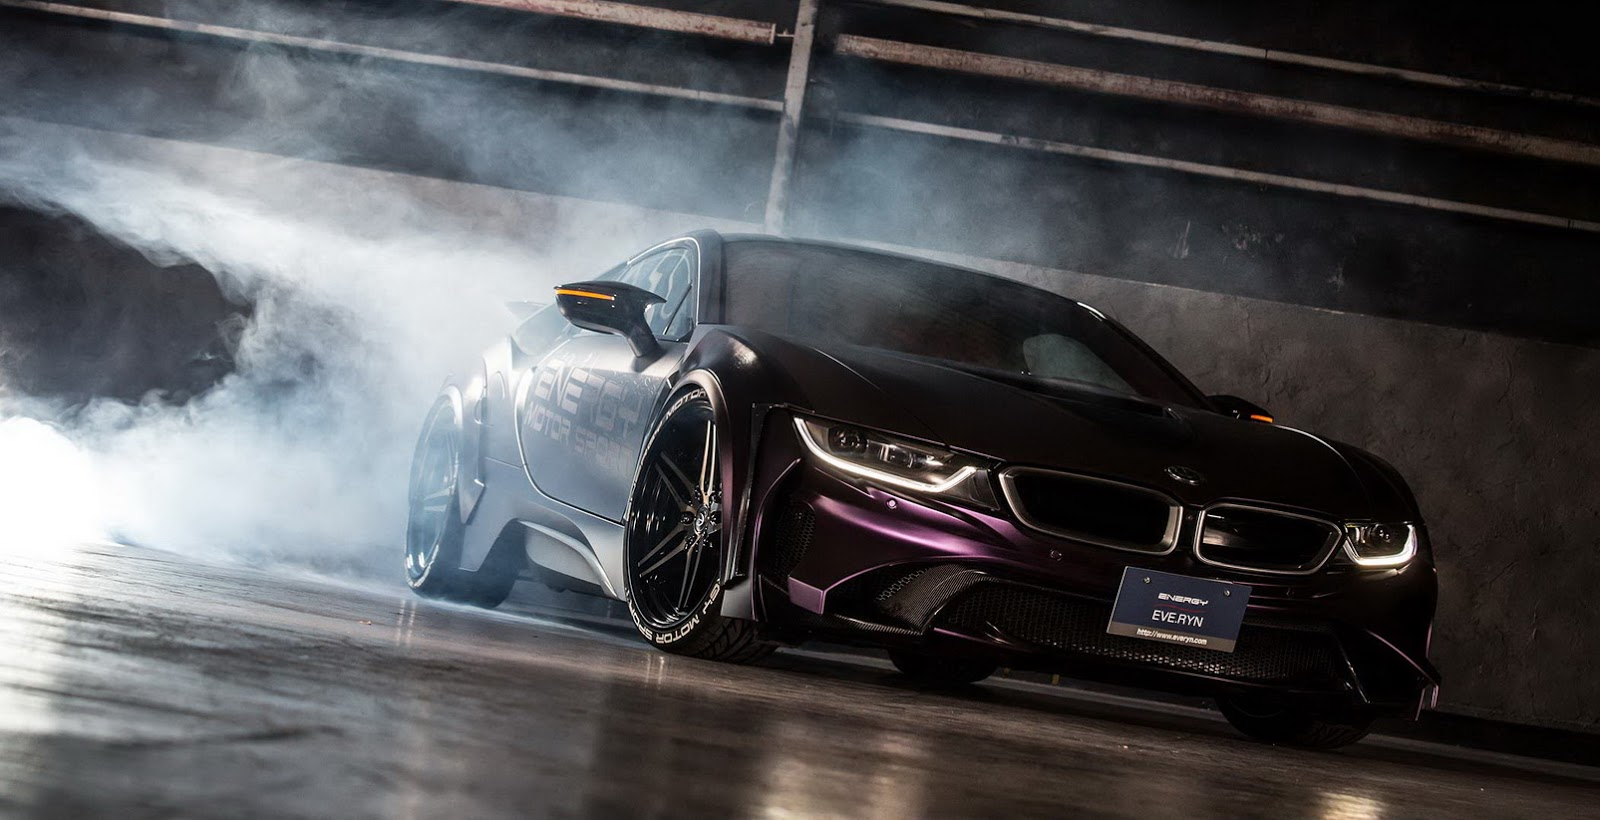 Eve Ryn Bmw I8 Dark Knight Spotted In Japan Has Crazy Red